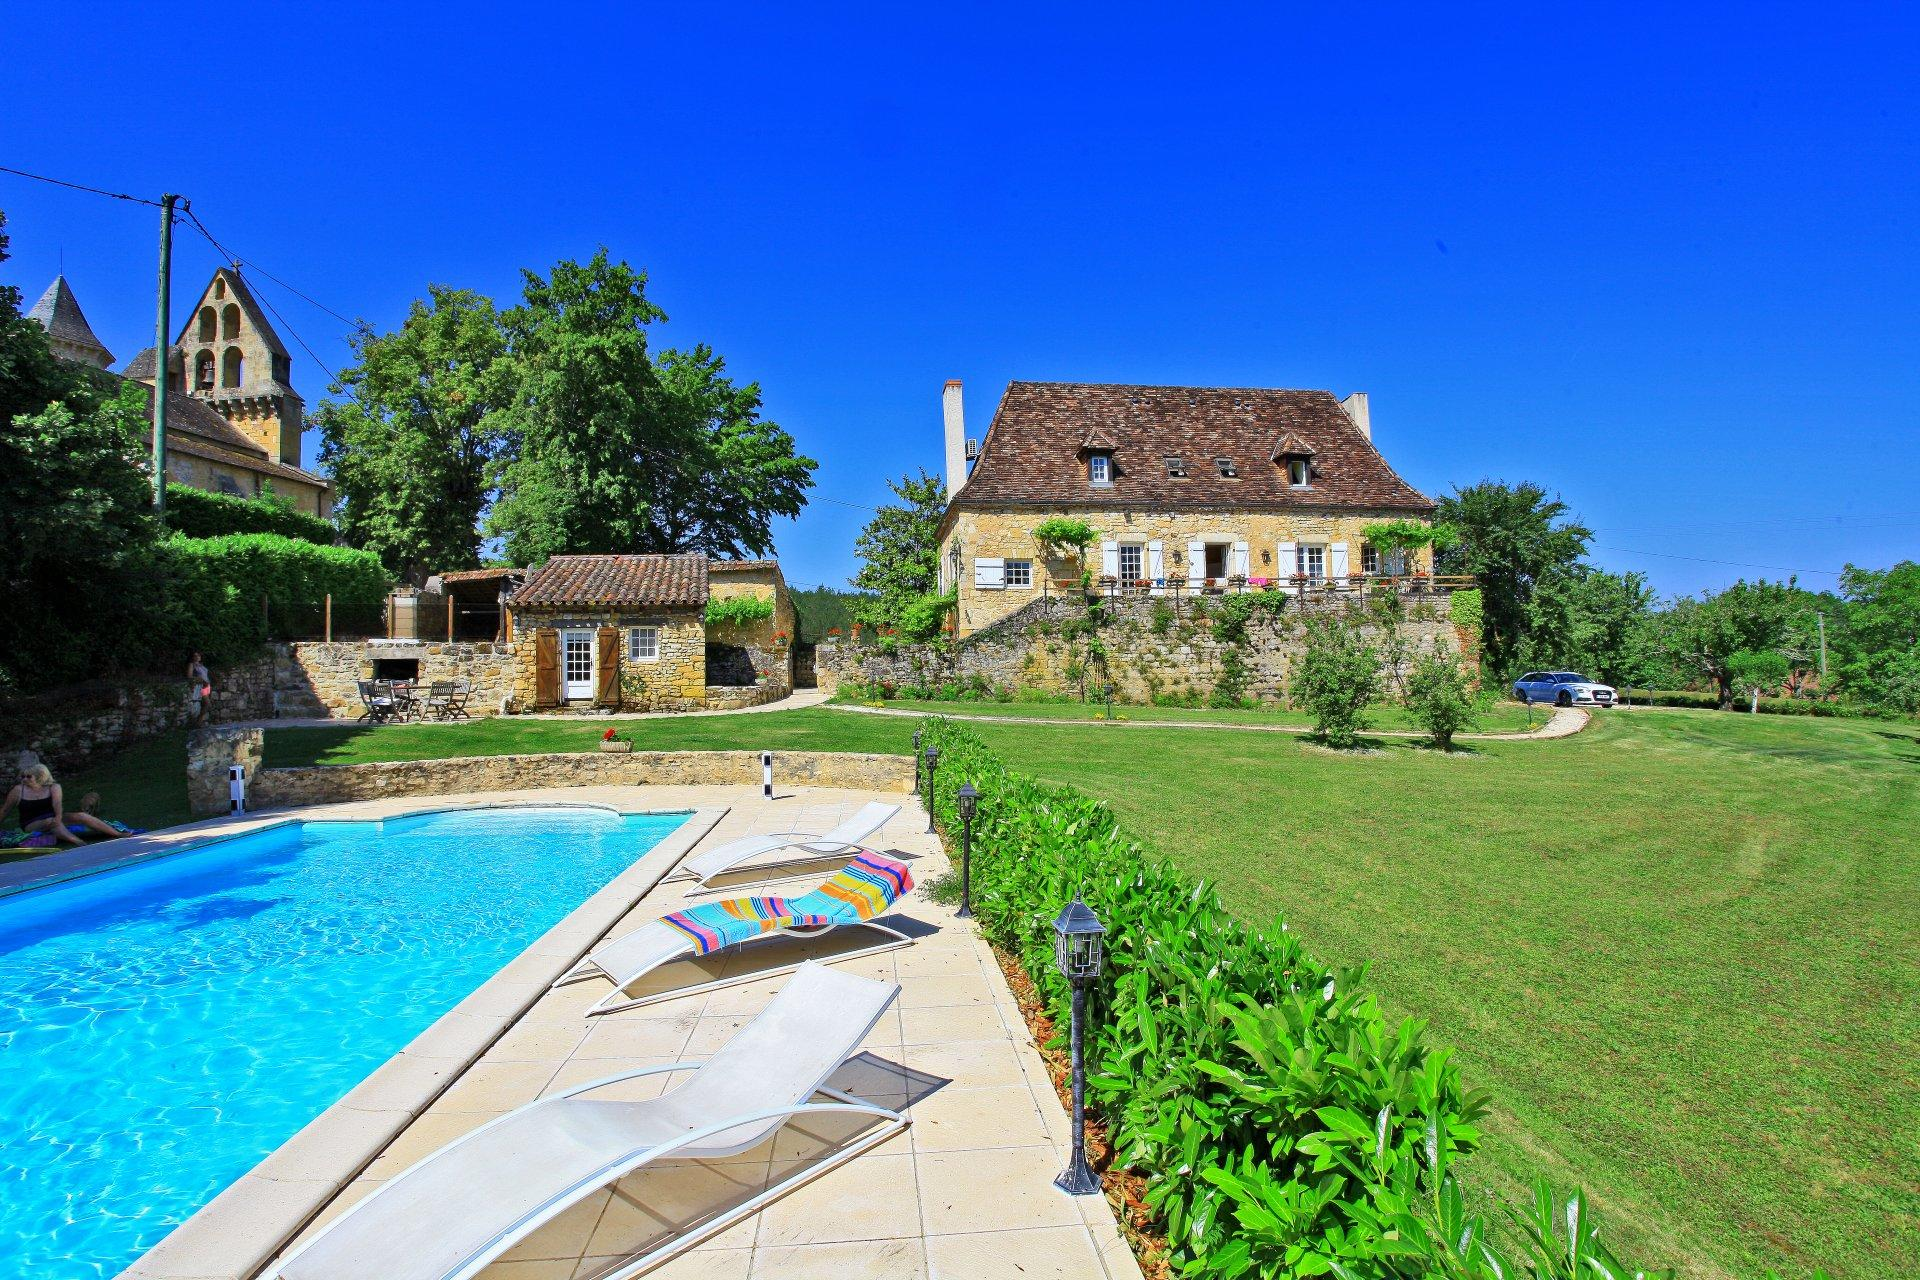 Villa Exterior and Pool, La Retraite, Nadaillac De Rouge, Dordogne.